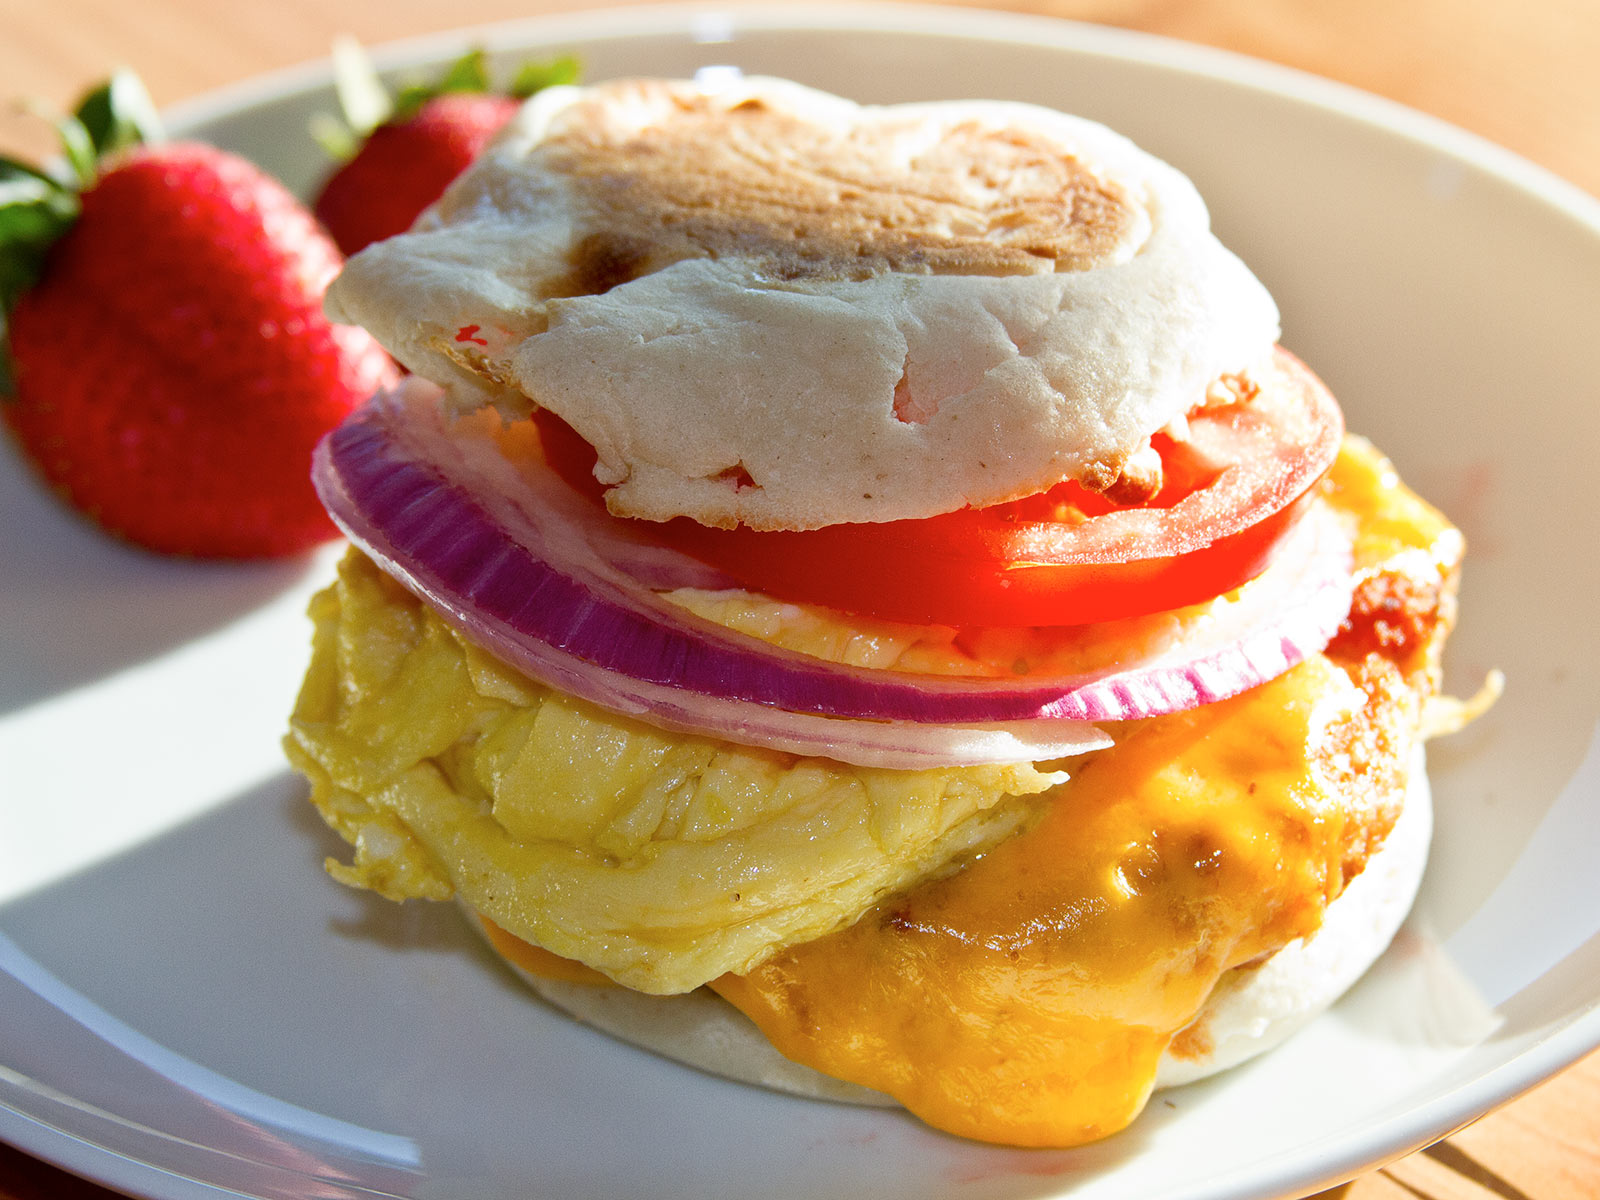 The Big Salmon Breakfast Sandwich